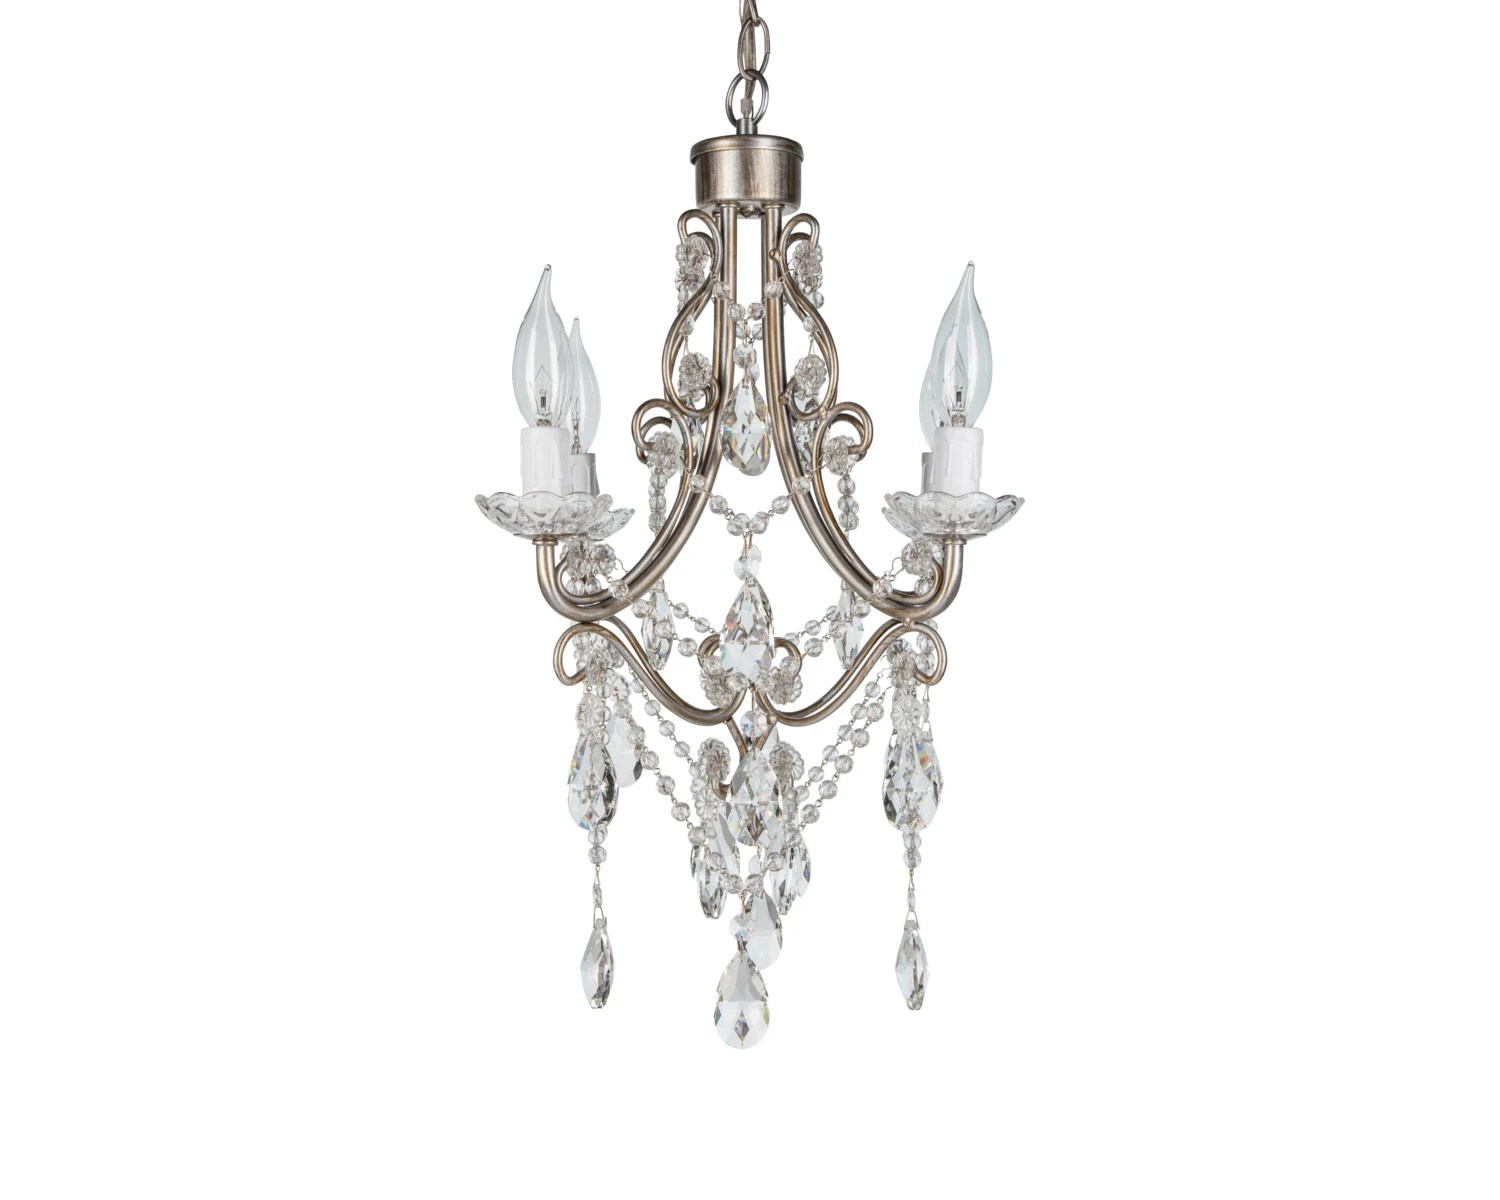 Silver Mini Crystal Chandelier 4 Lights By Platinumhomedesigns